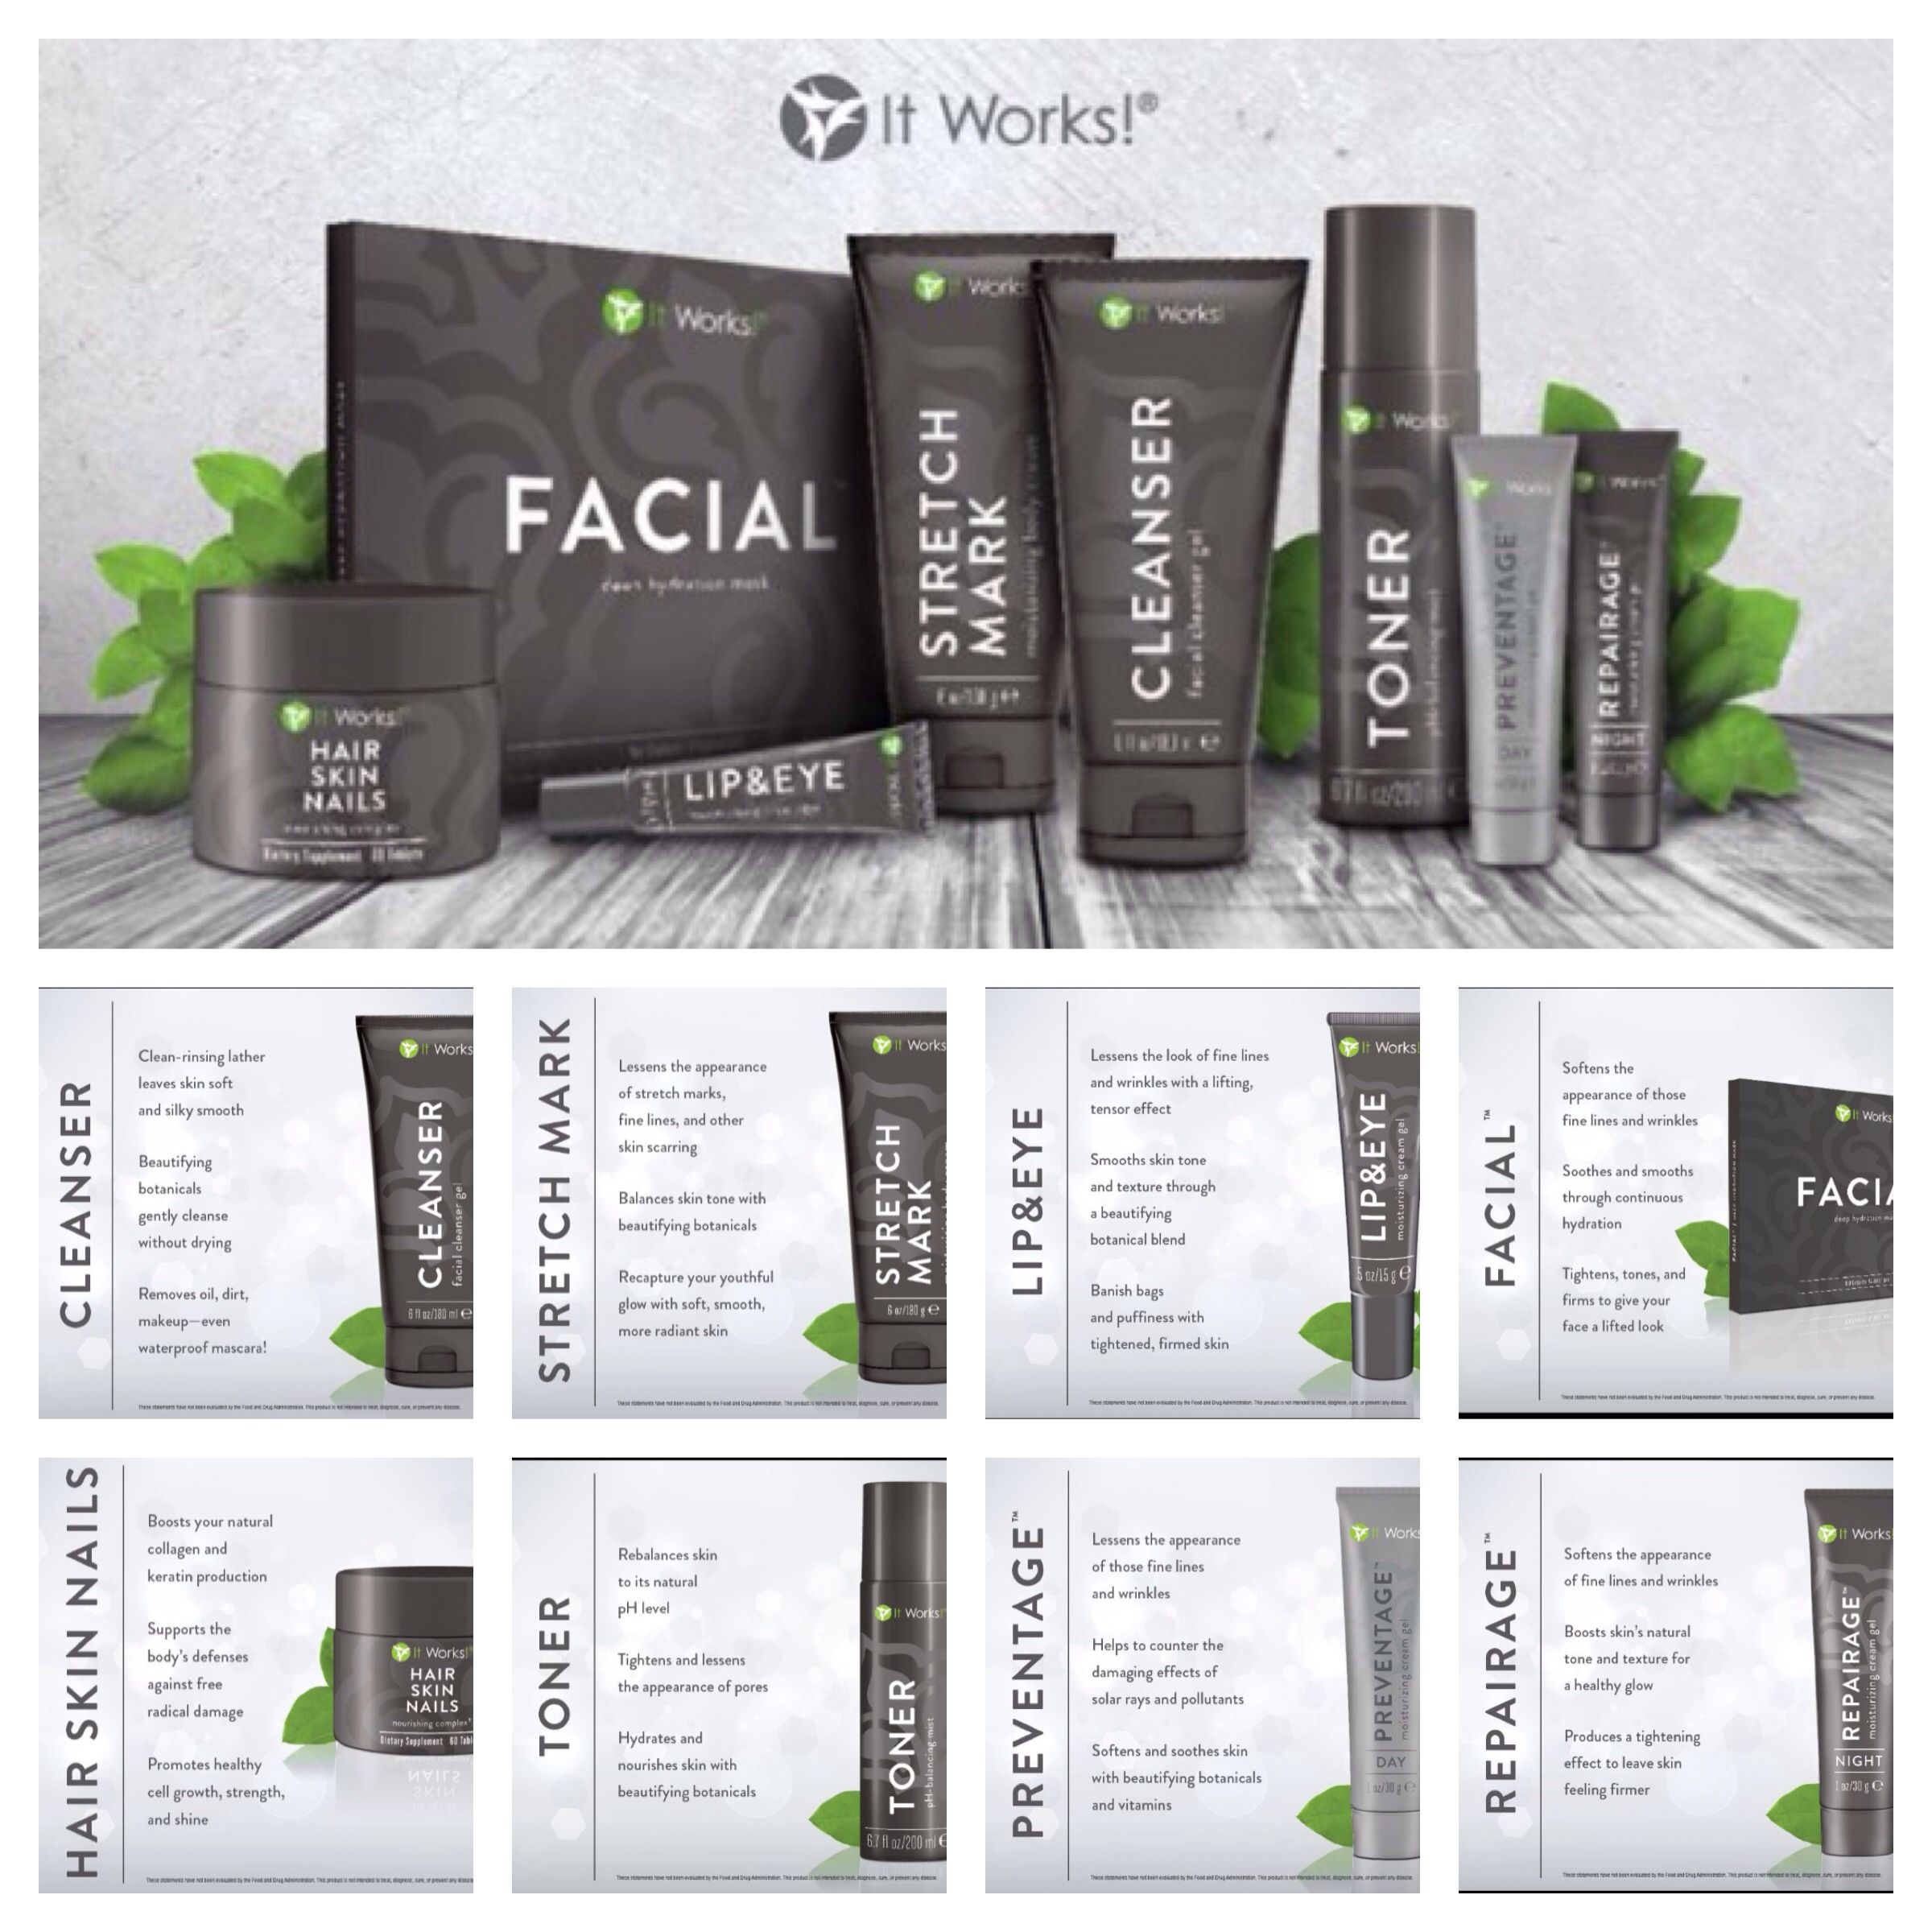 Facial products for facial lines